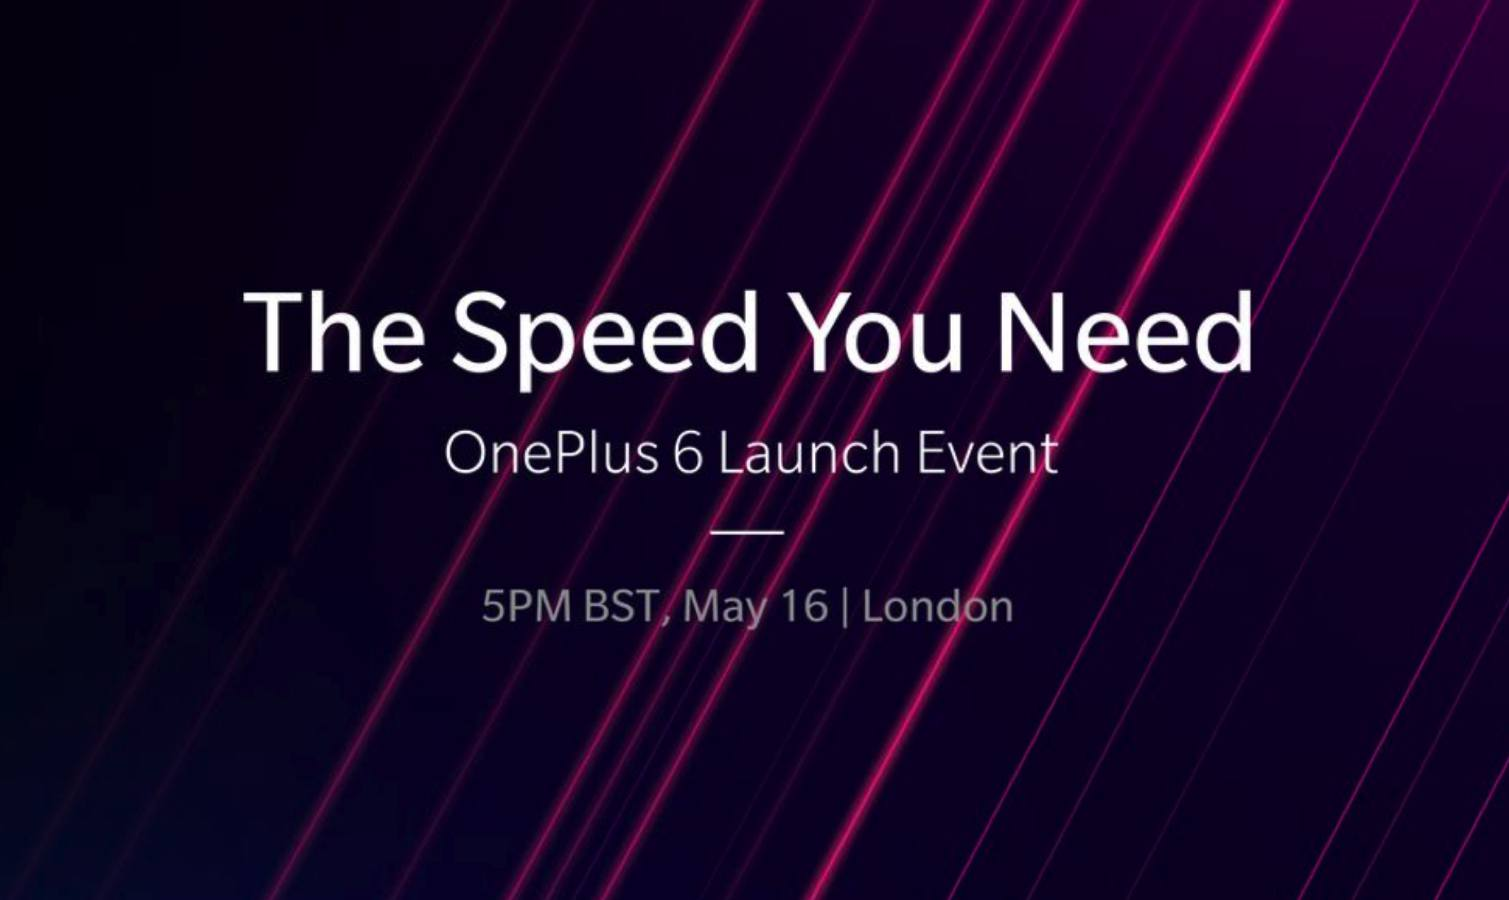 oneplus 6 launch date